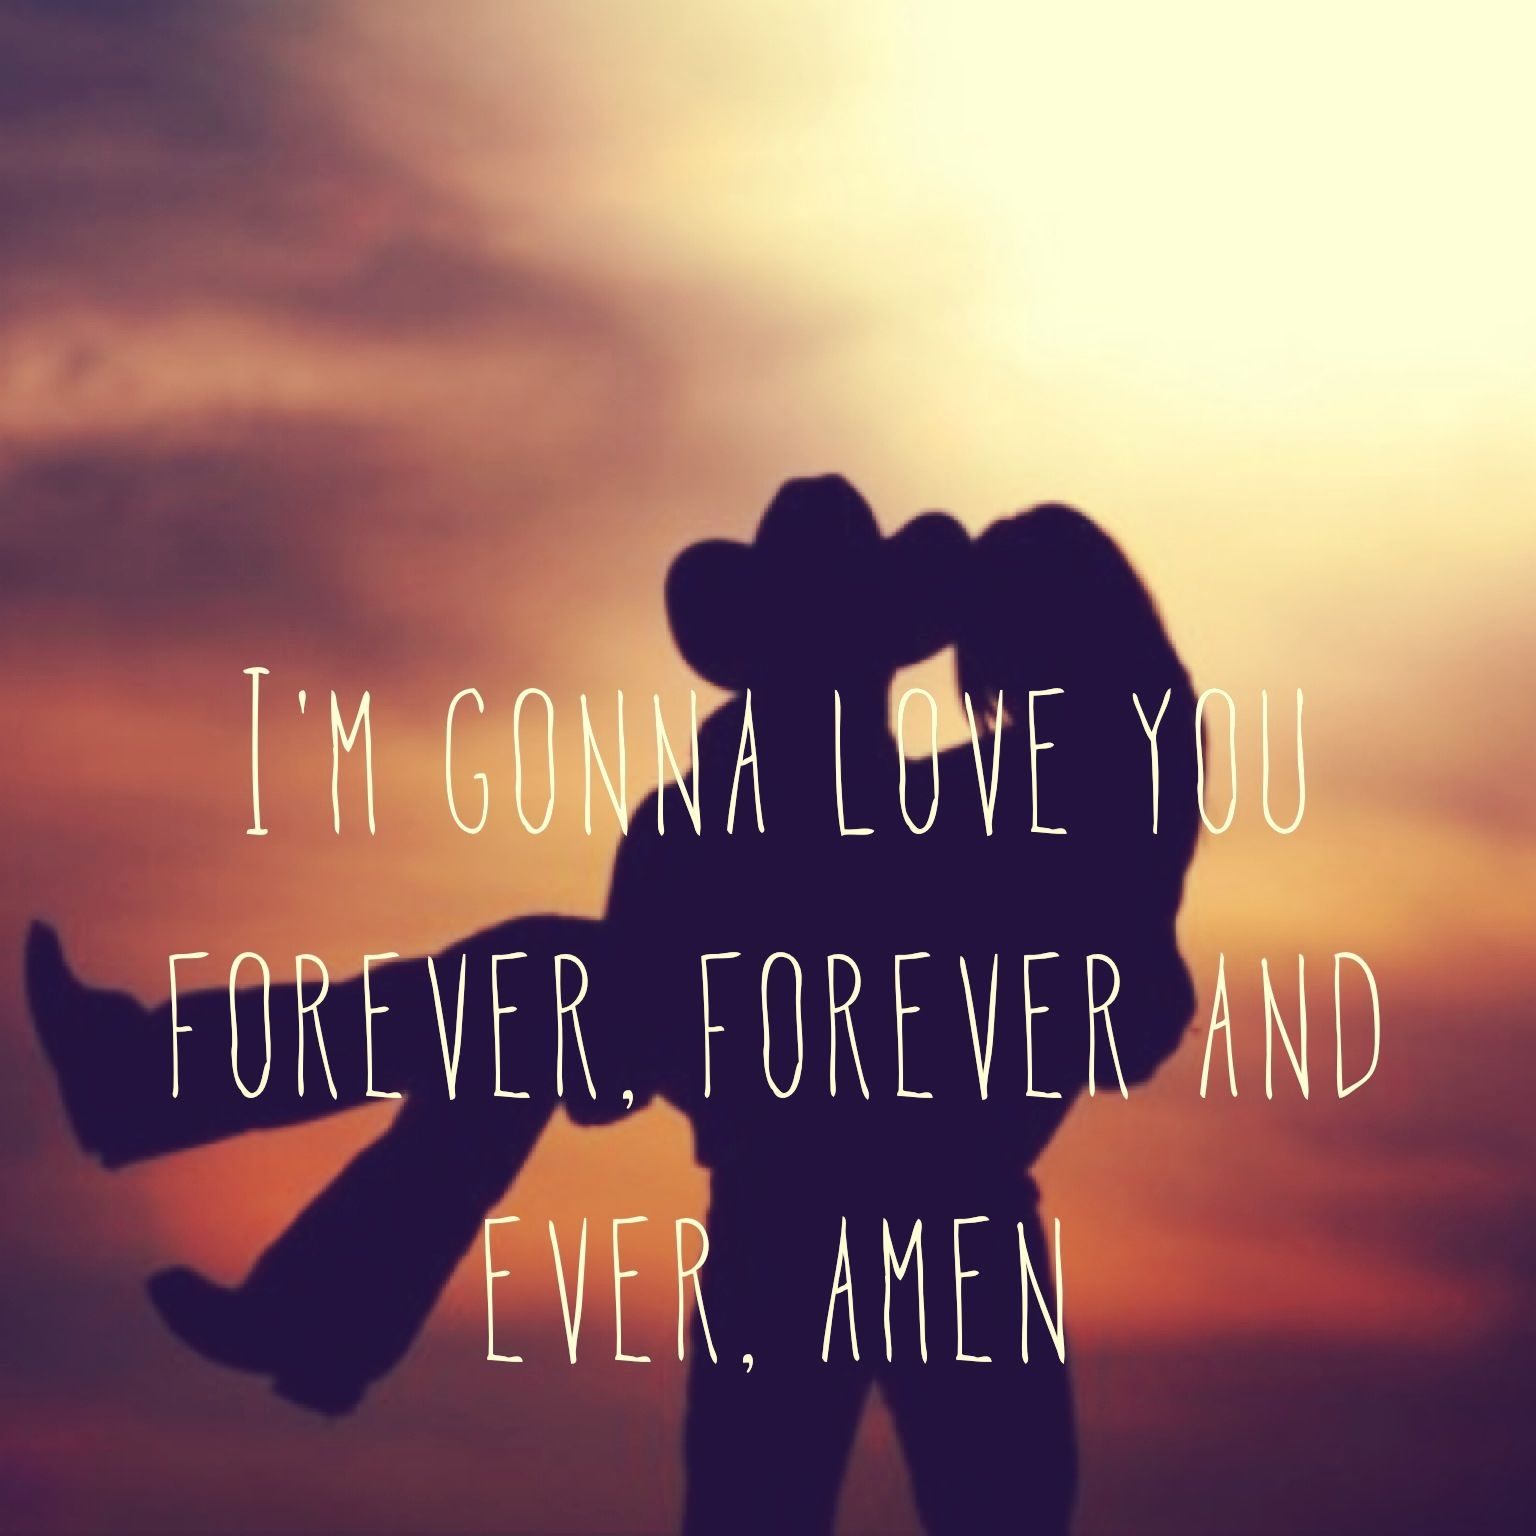 Forever and ever amen!